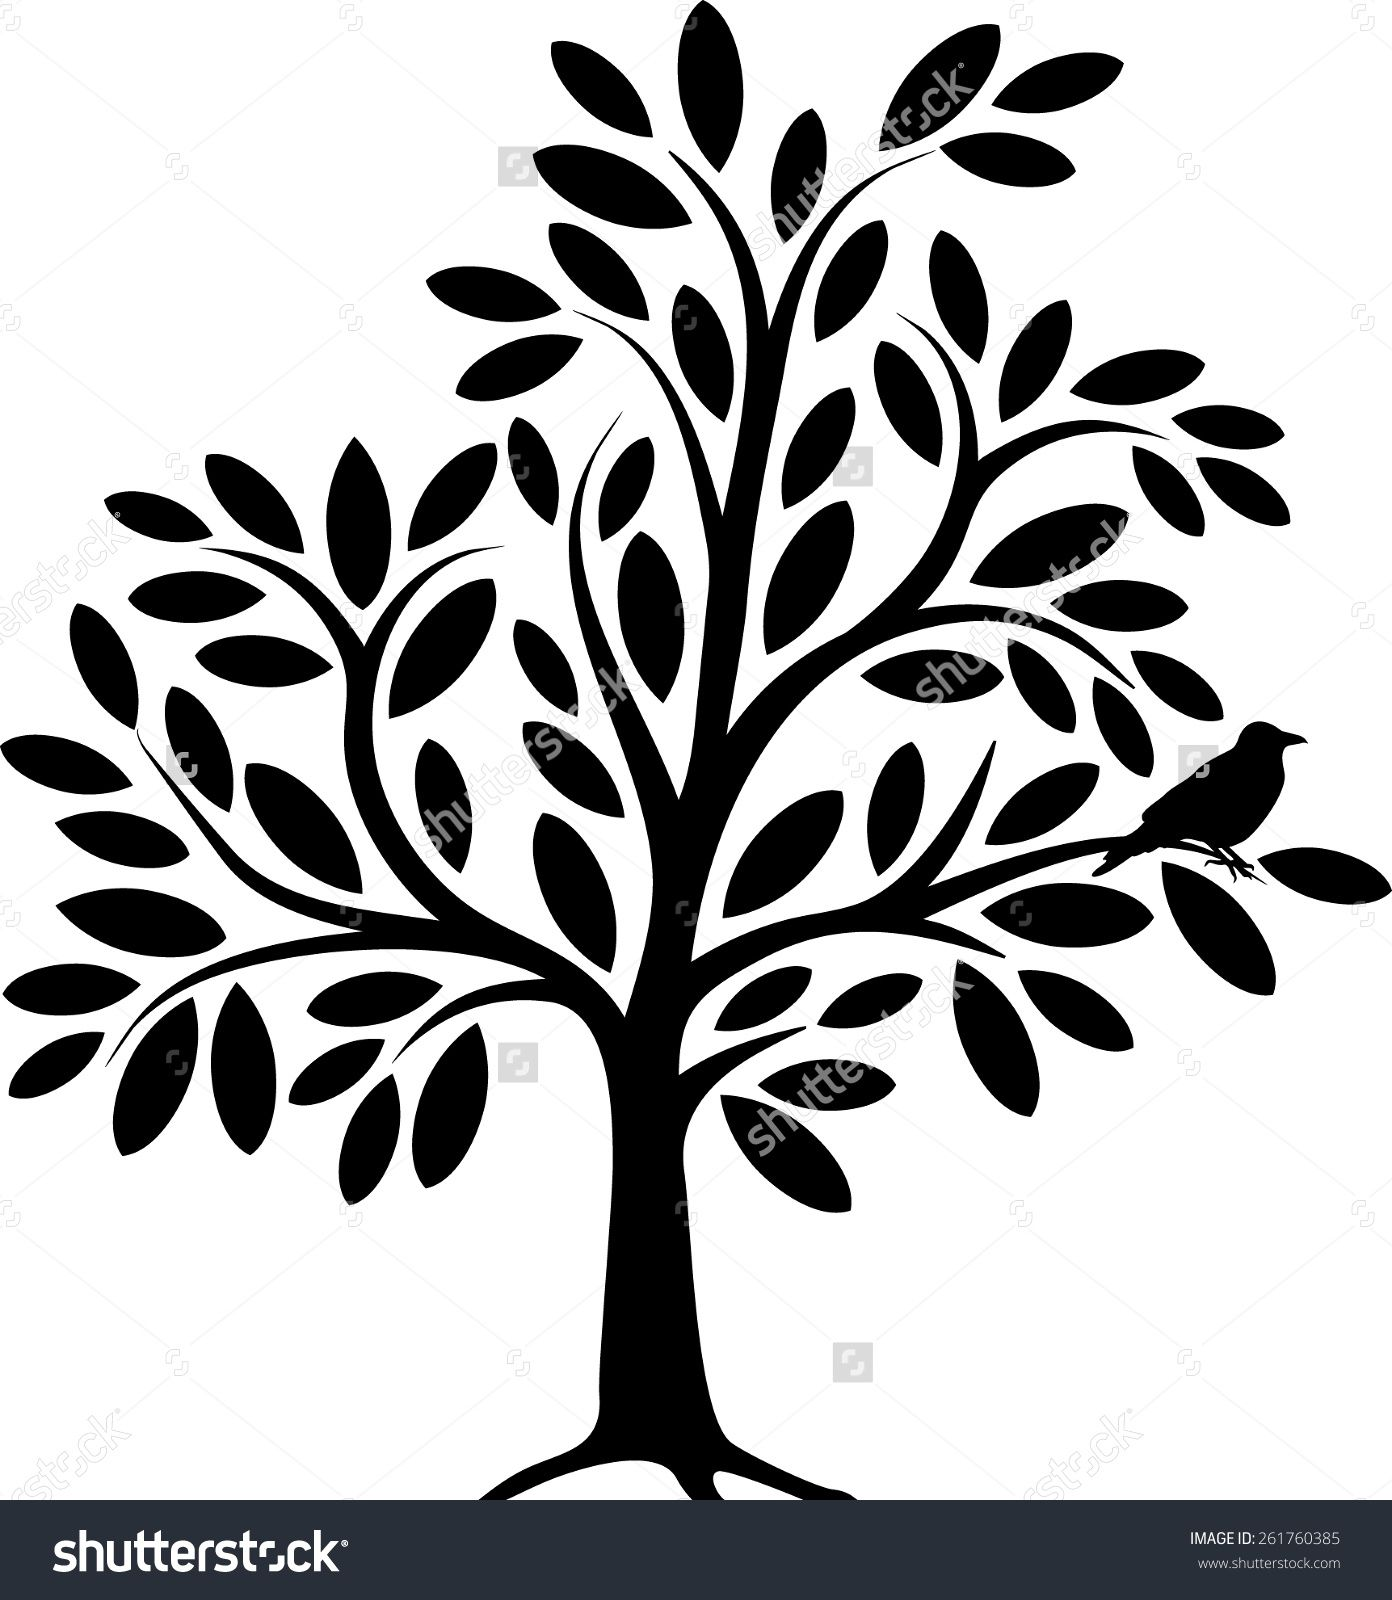 decor decorative vectorstock free vector royalty tree image